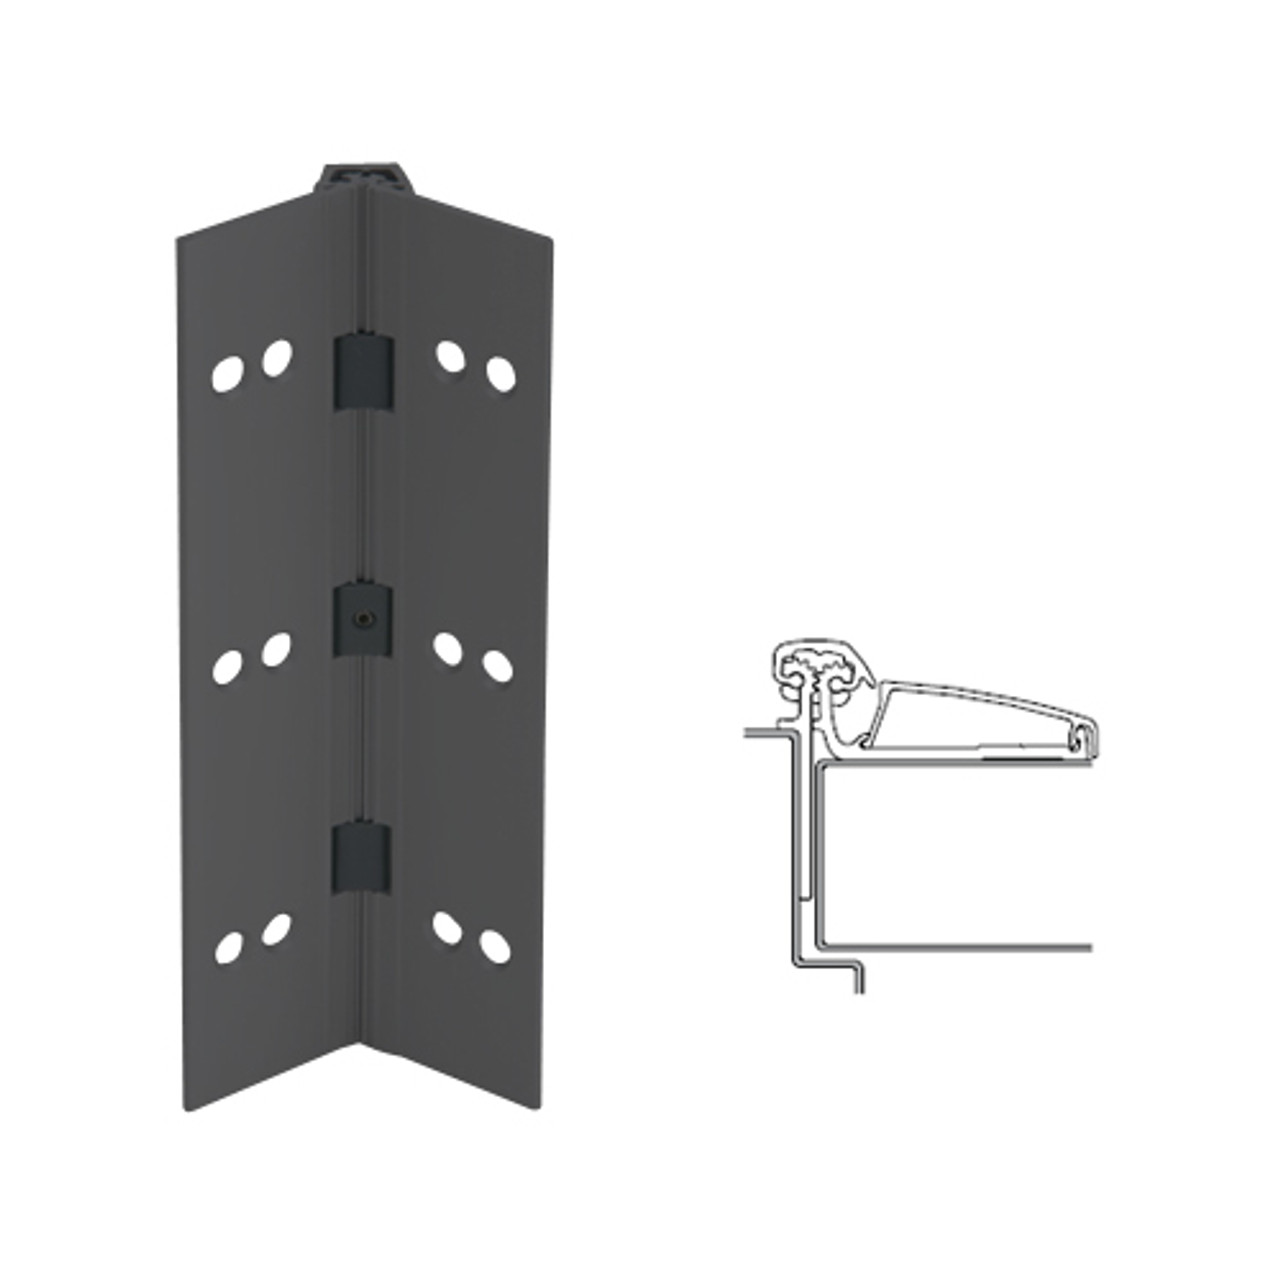 045XY-315AN-95-TFWD IVES Adjustable Half Surface Continuous Geared Hinges with Thread Forming Screws in Anodized Black